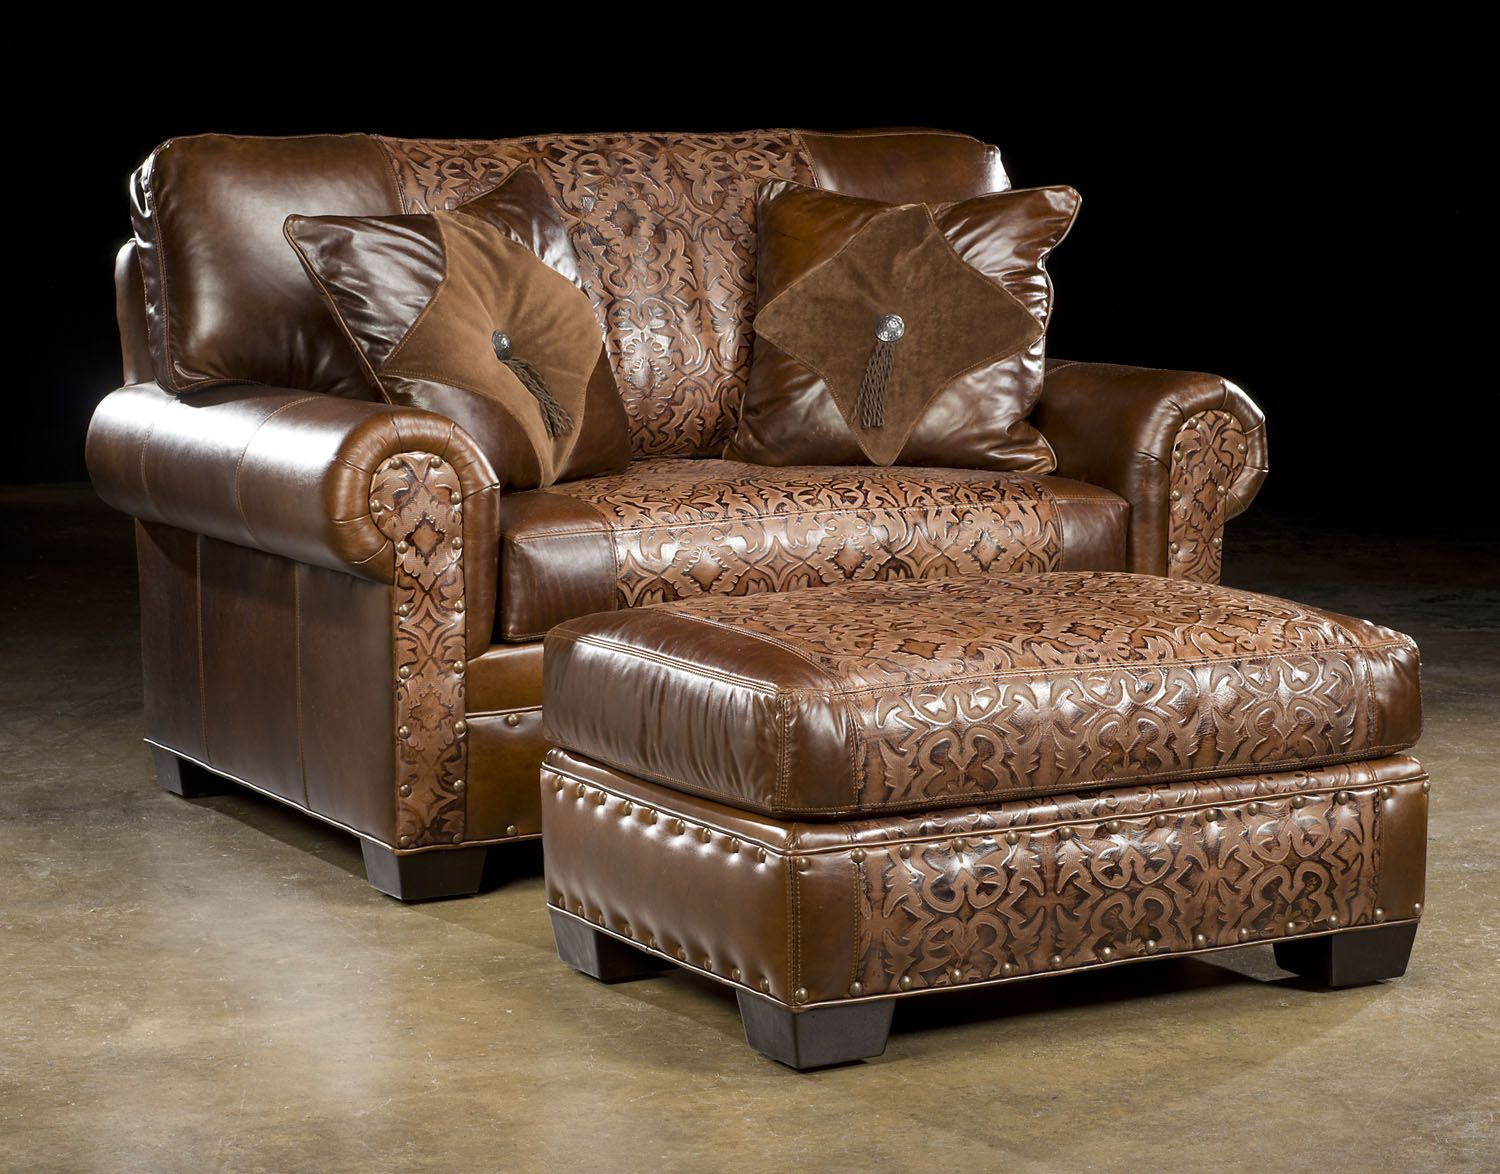 Curved sofa from Paul Robert Austin Hill Country Furniture